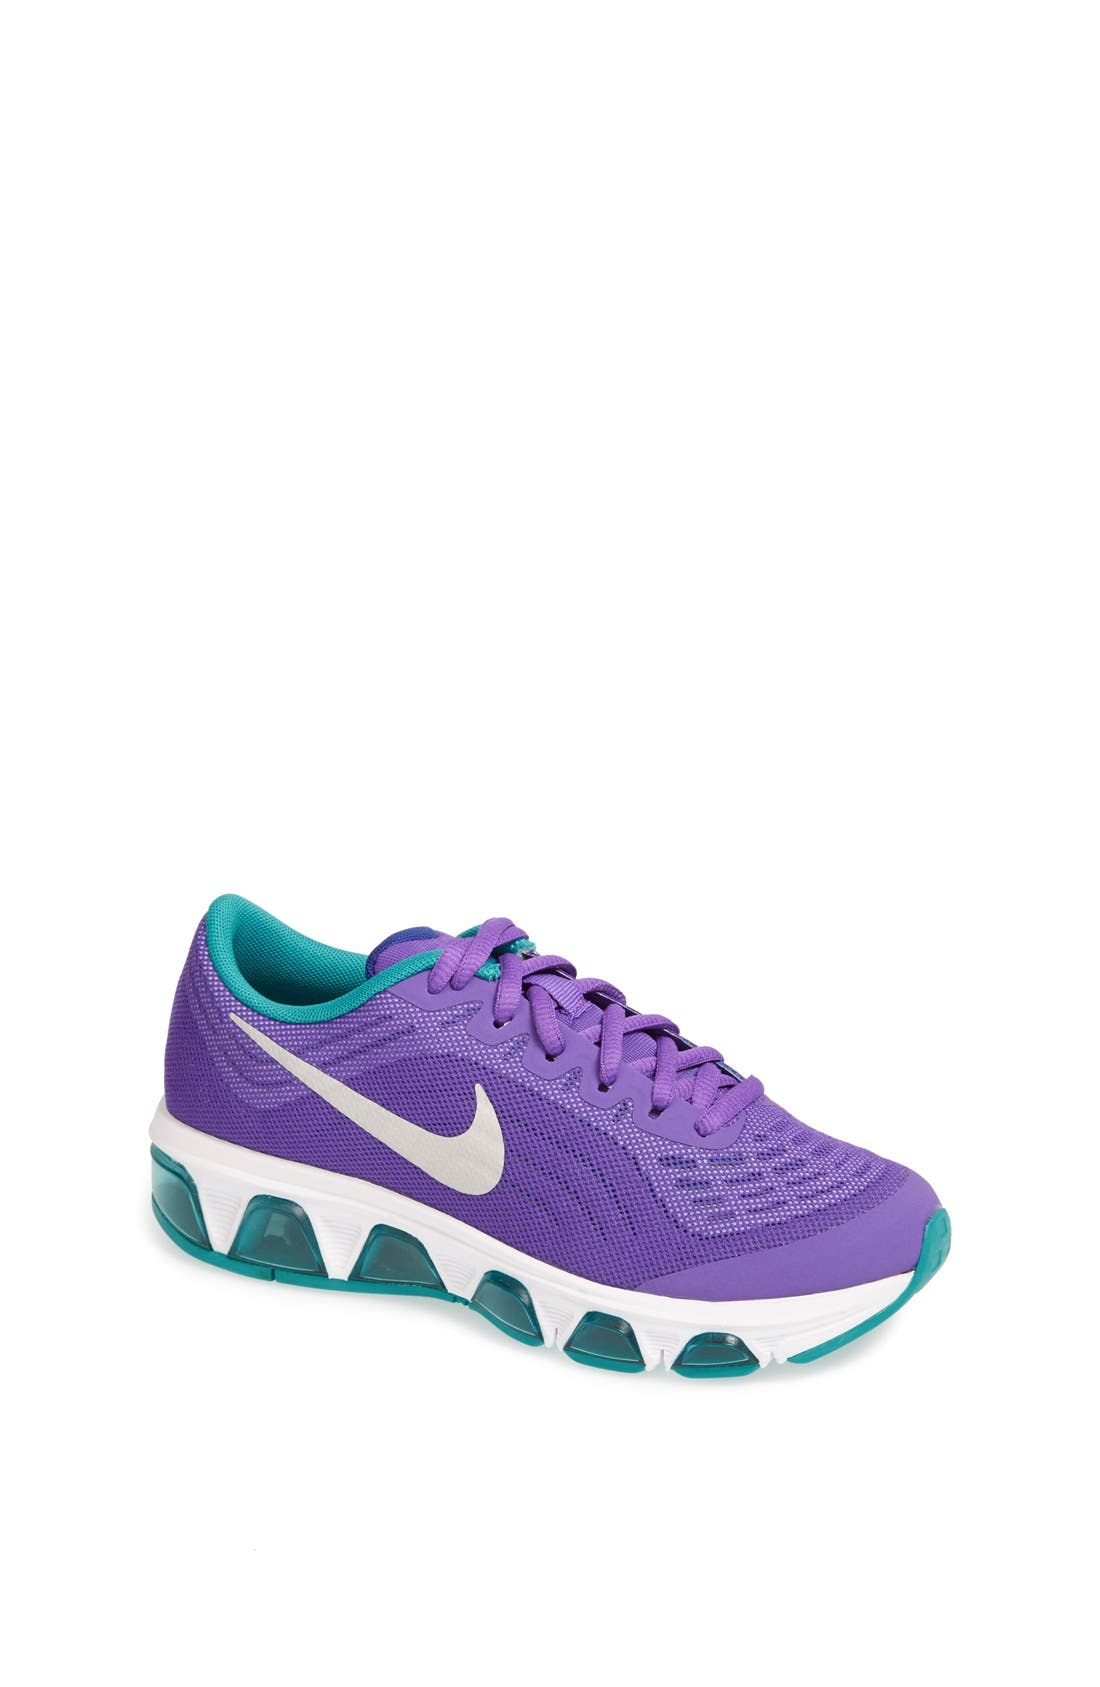 Alternate Image 1 Selected - Nike 'Air Max Tailwind+' Running Shoe (Big Kid)